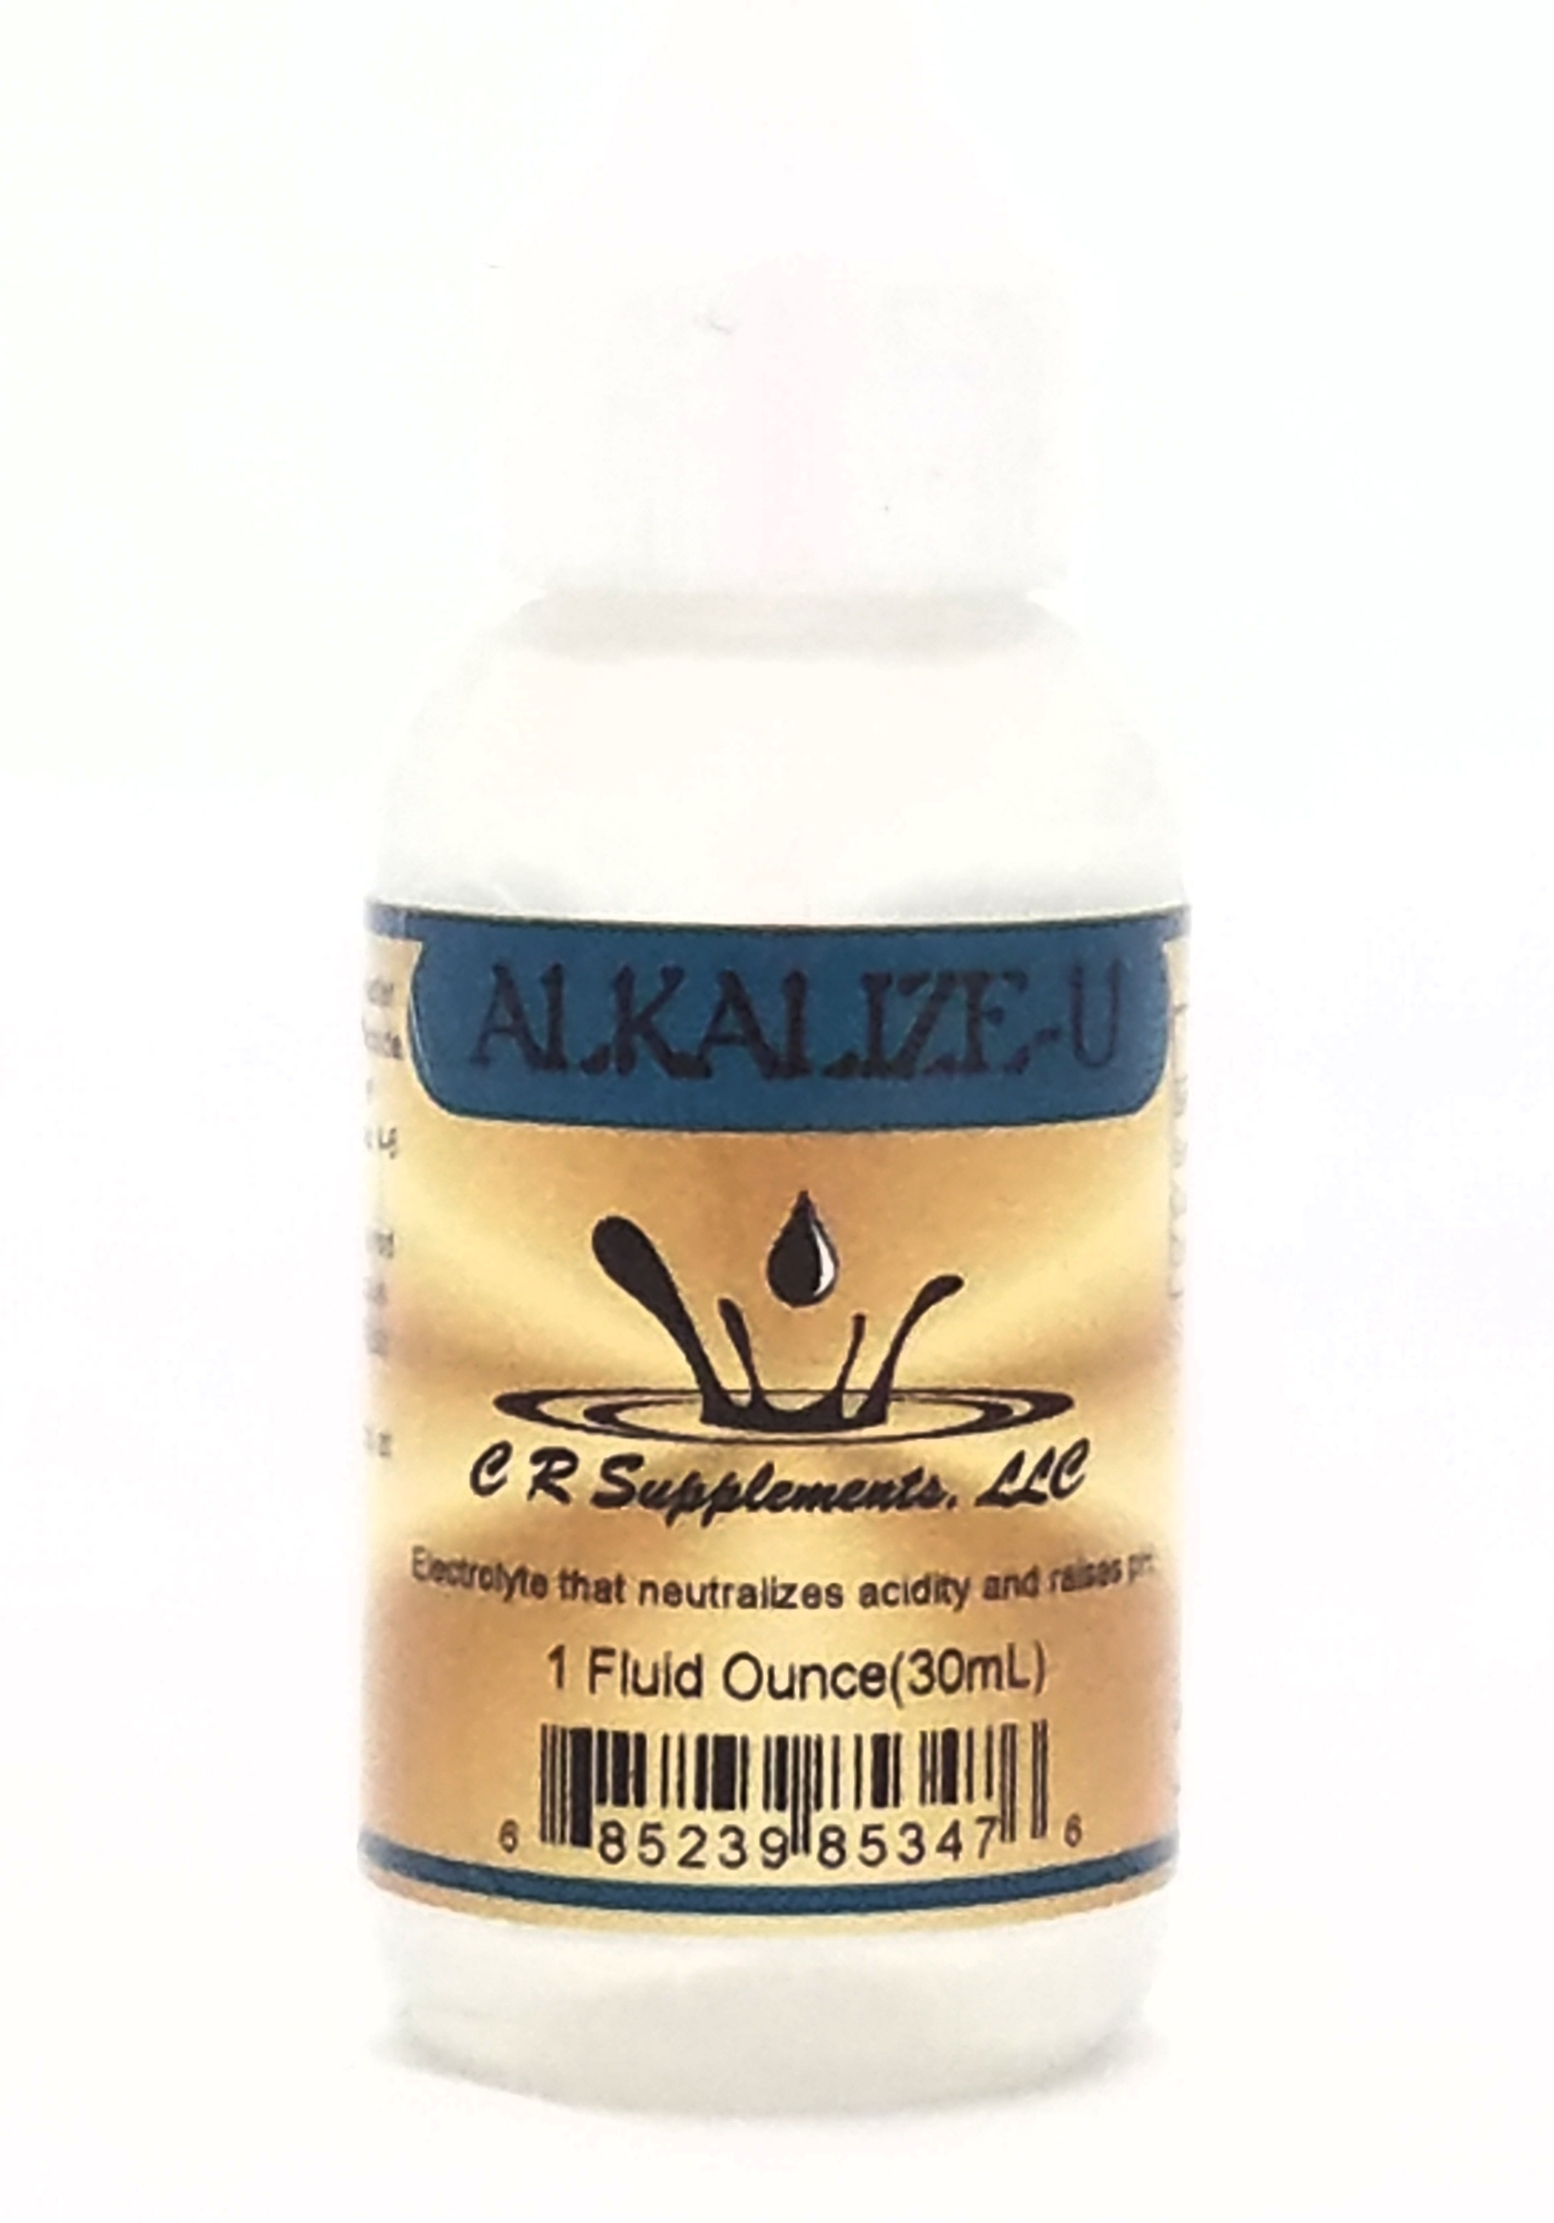 Alkalize-U (Body Alkalizer)